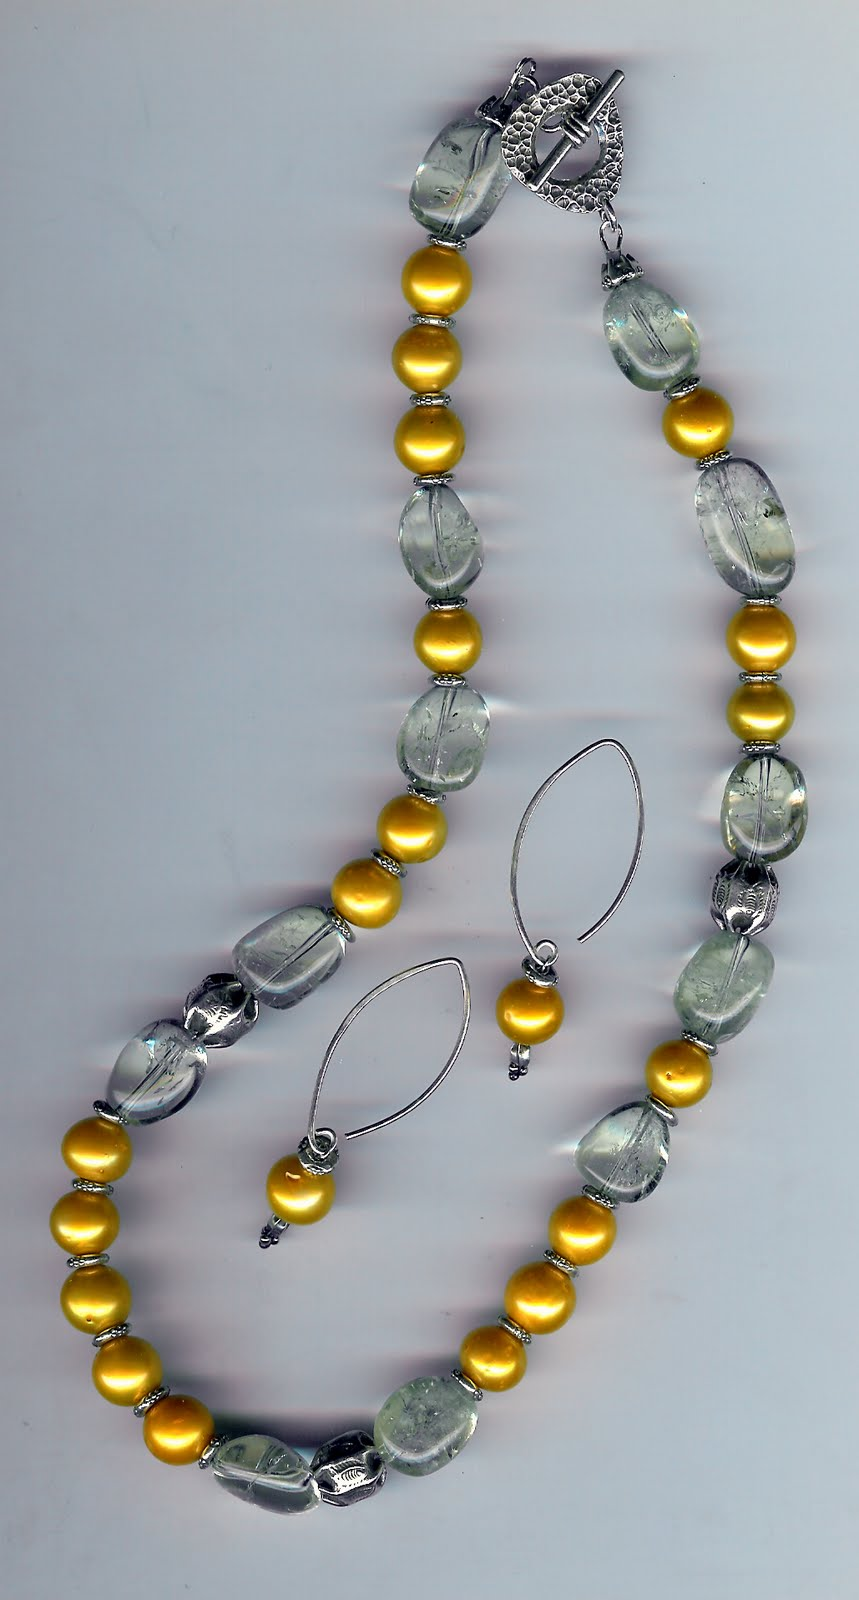 128. Akoya pearls with Citrine and Karen Hill Thai Sterling Silver + Earrings